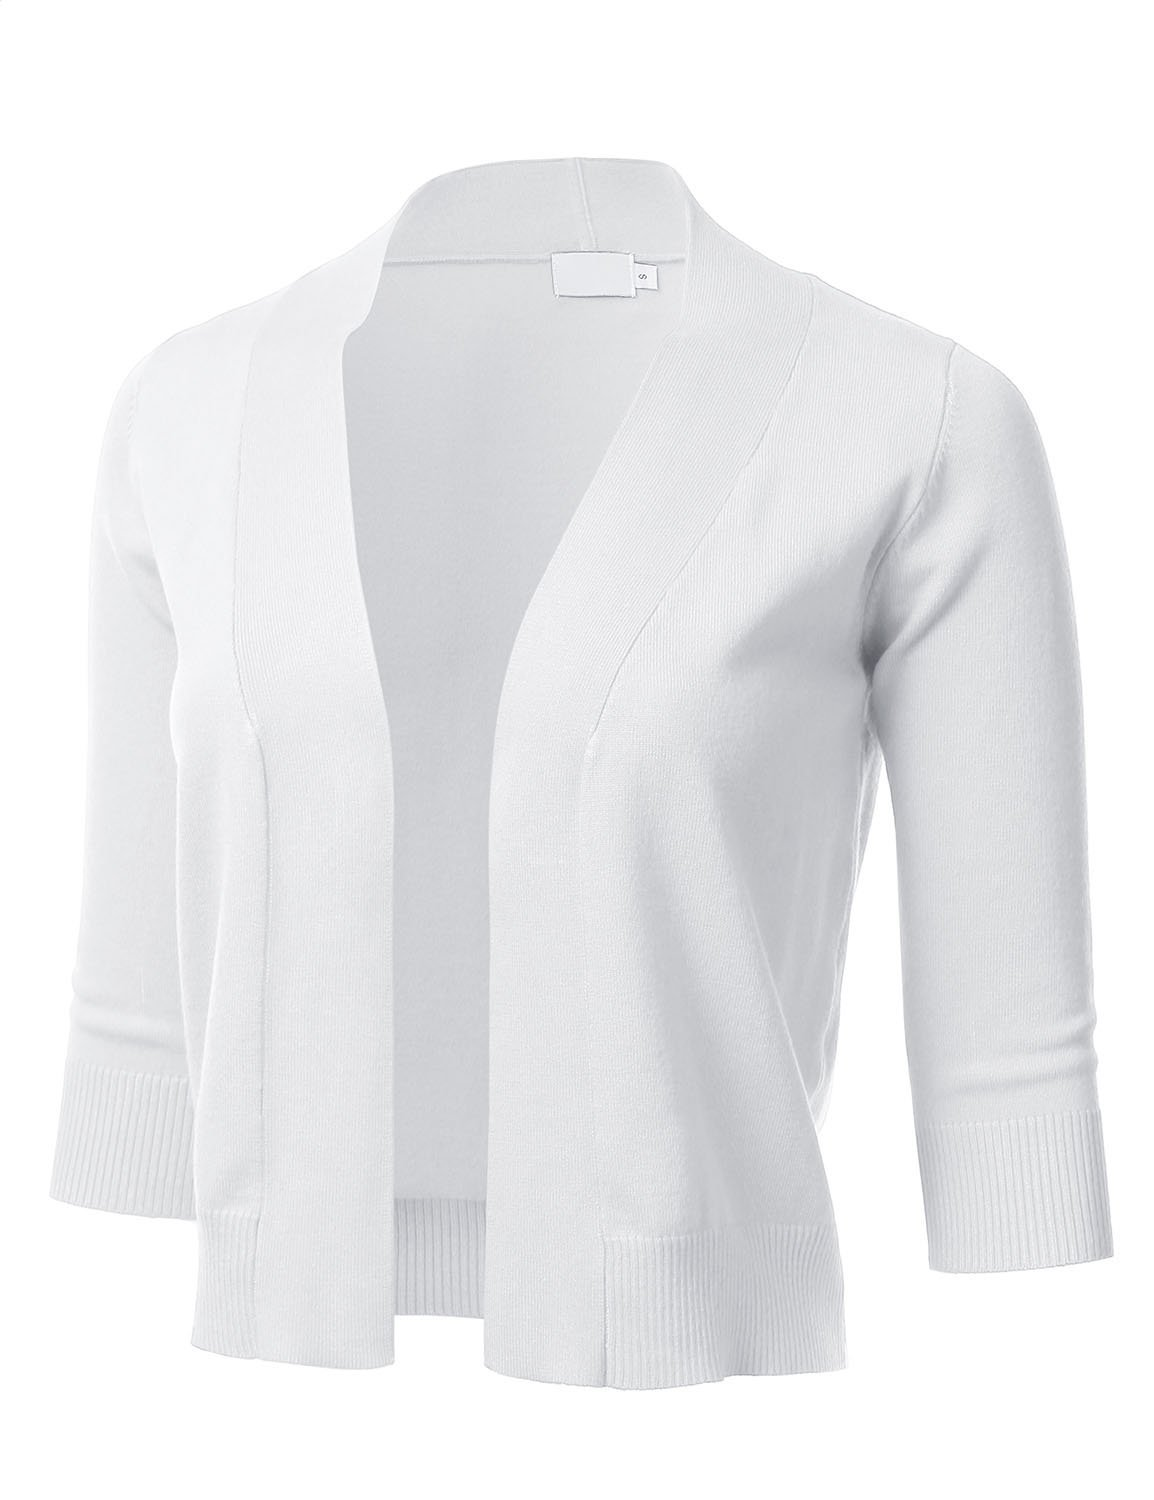 FLORIA Womens Classic 3/4 Sleeve Open Front Cropped Cardigan White M by FLORIA